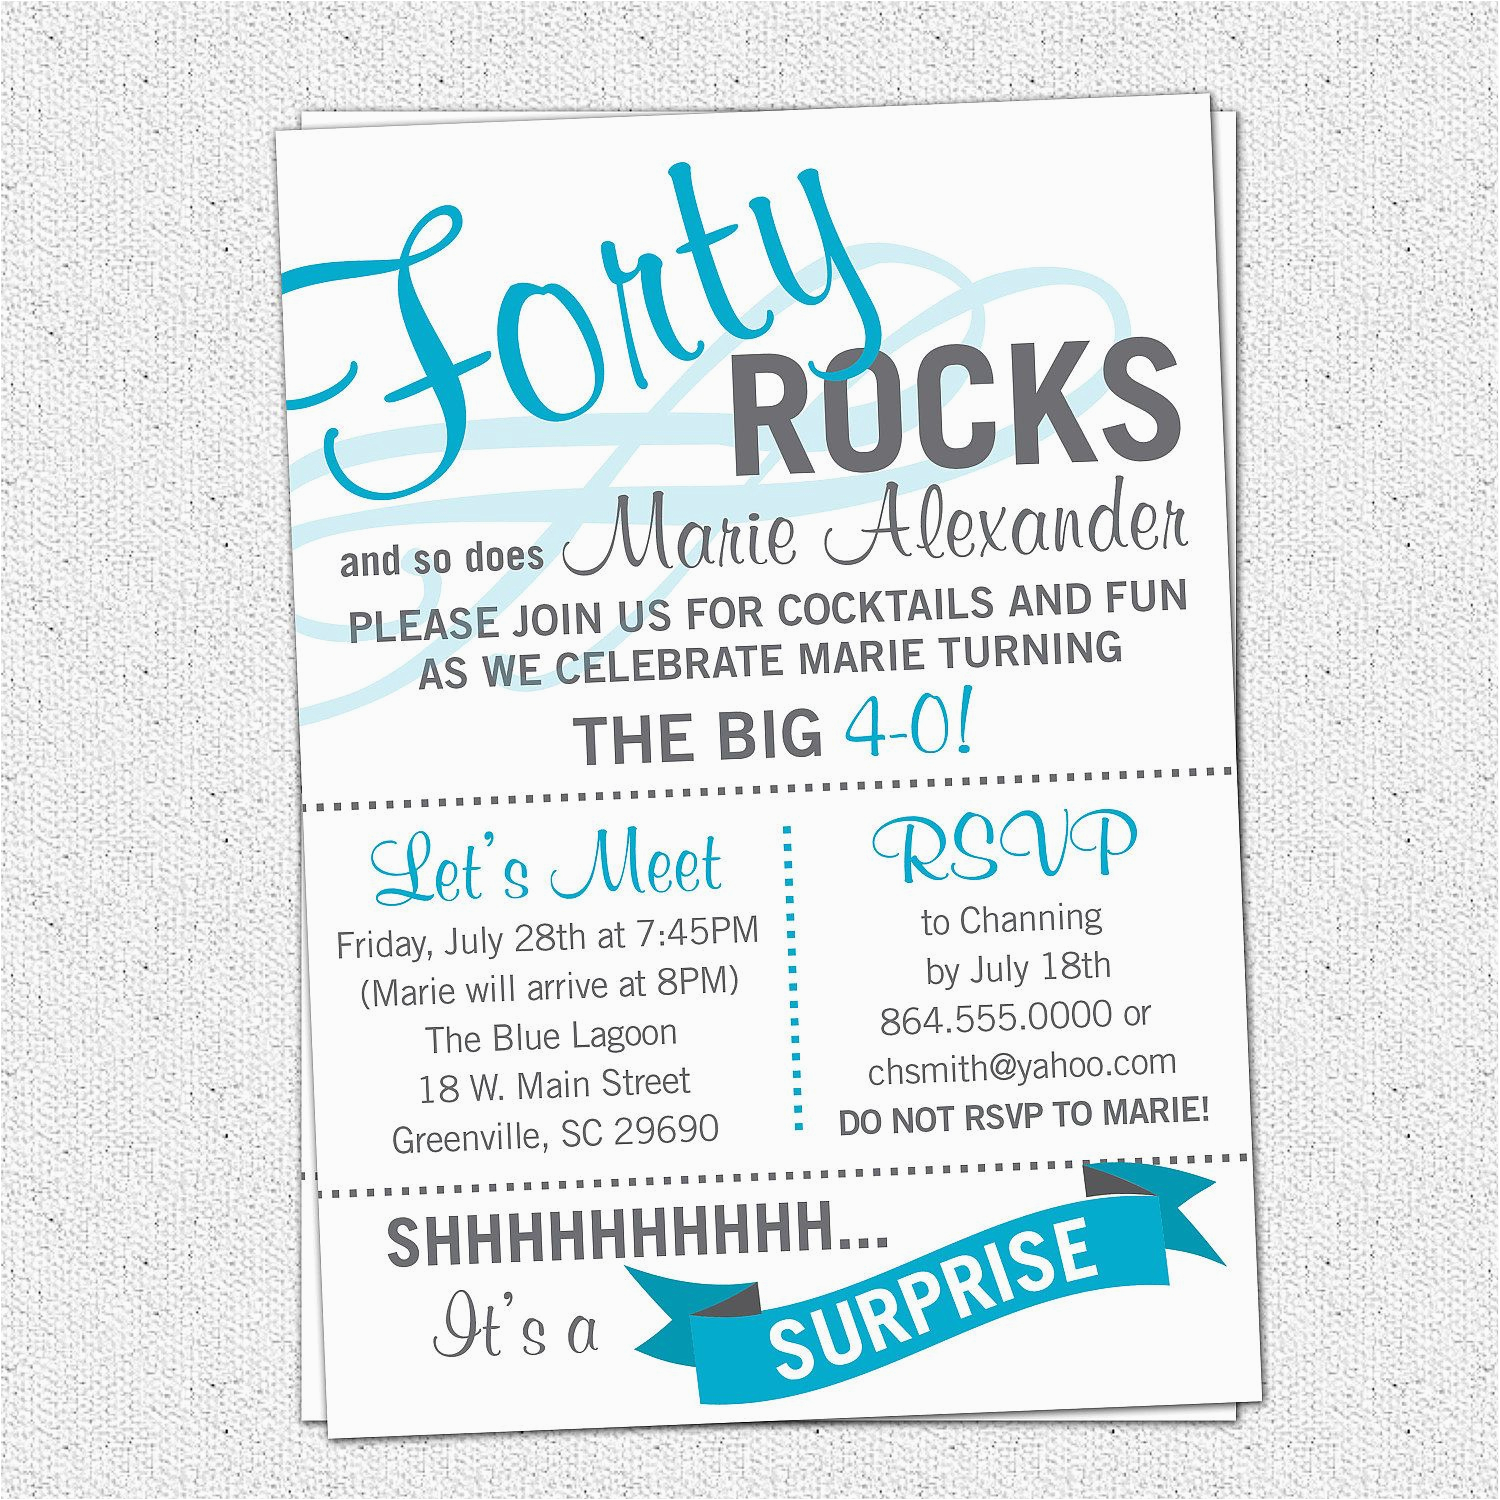 Free Printable 40th Birthday Party Invitation Templates Forty Rocks Bash